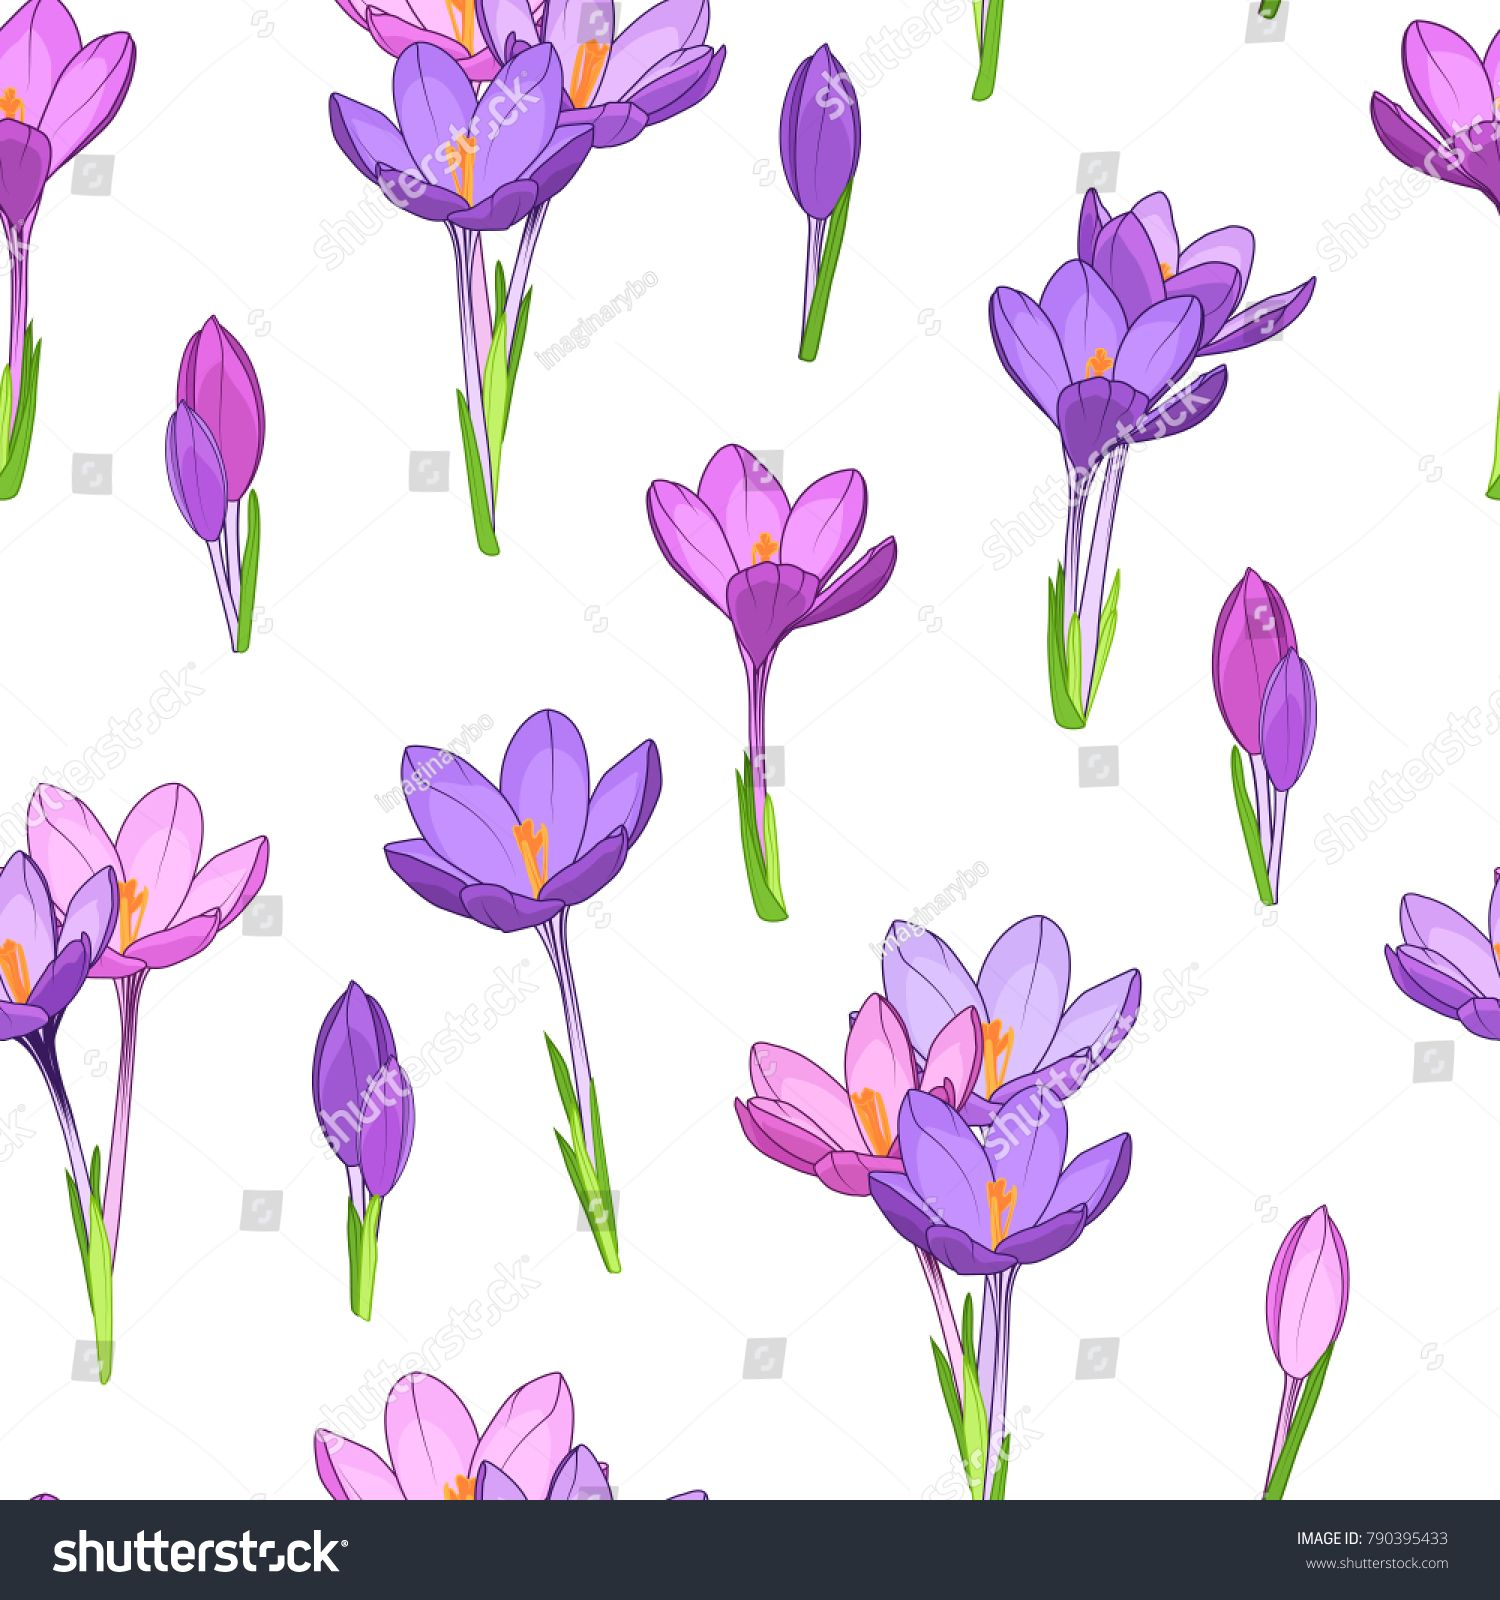 1500x1600 Crocus Saffron Purple Violet Spring Flowers Seamless Pattern